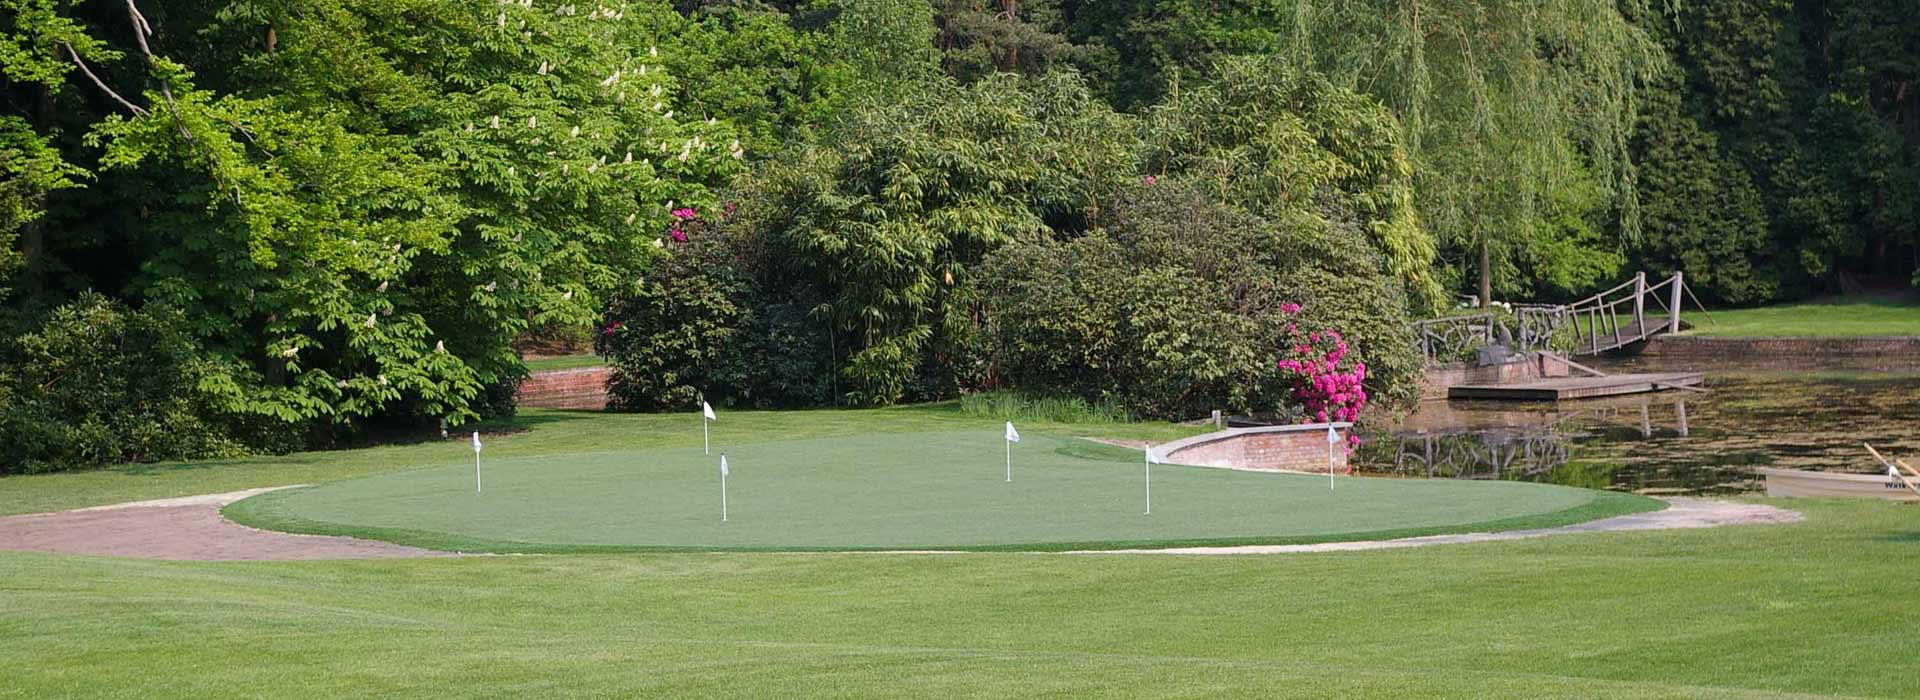 Large residential putting green surrounded by foliage